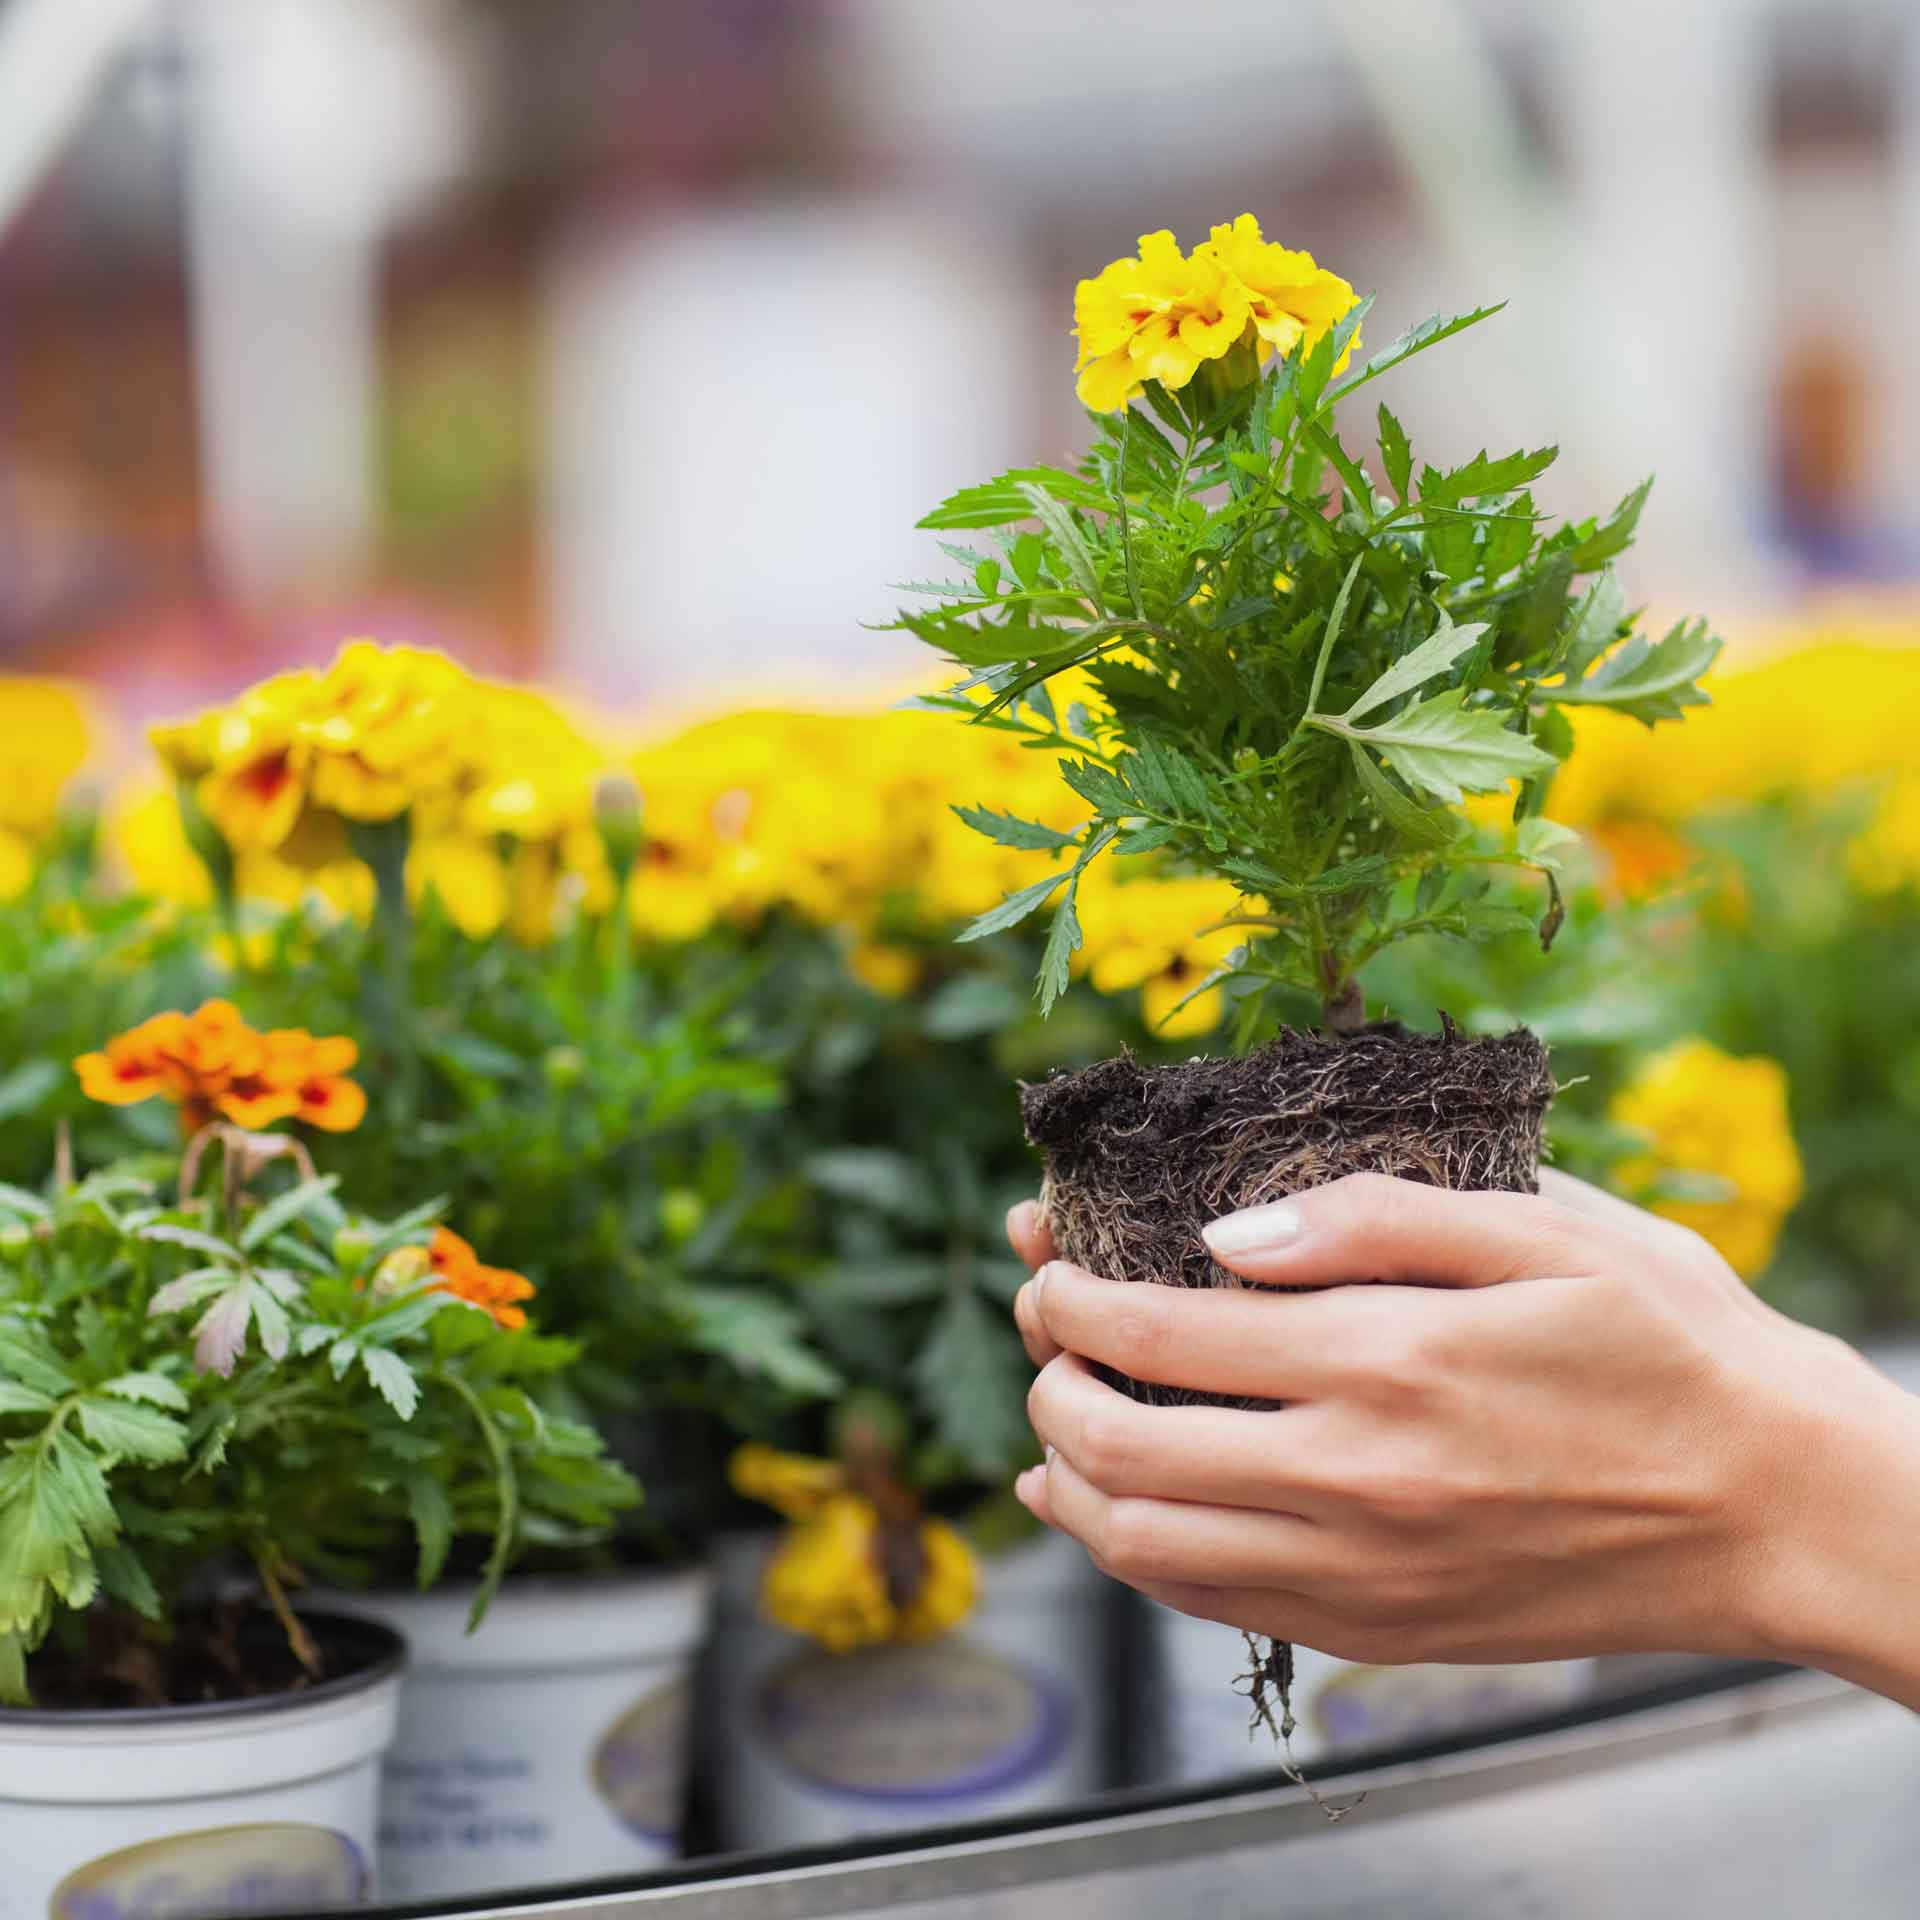 woman holding pot of yellow flowers